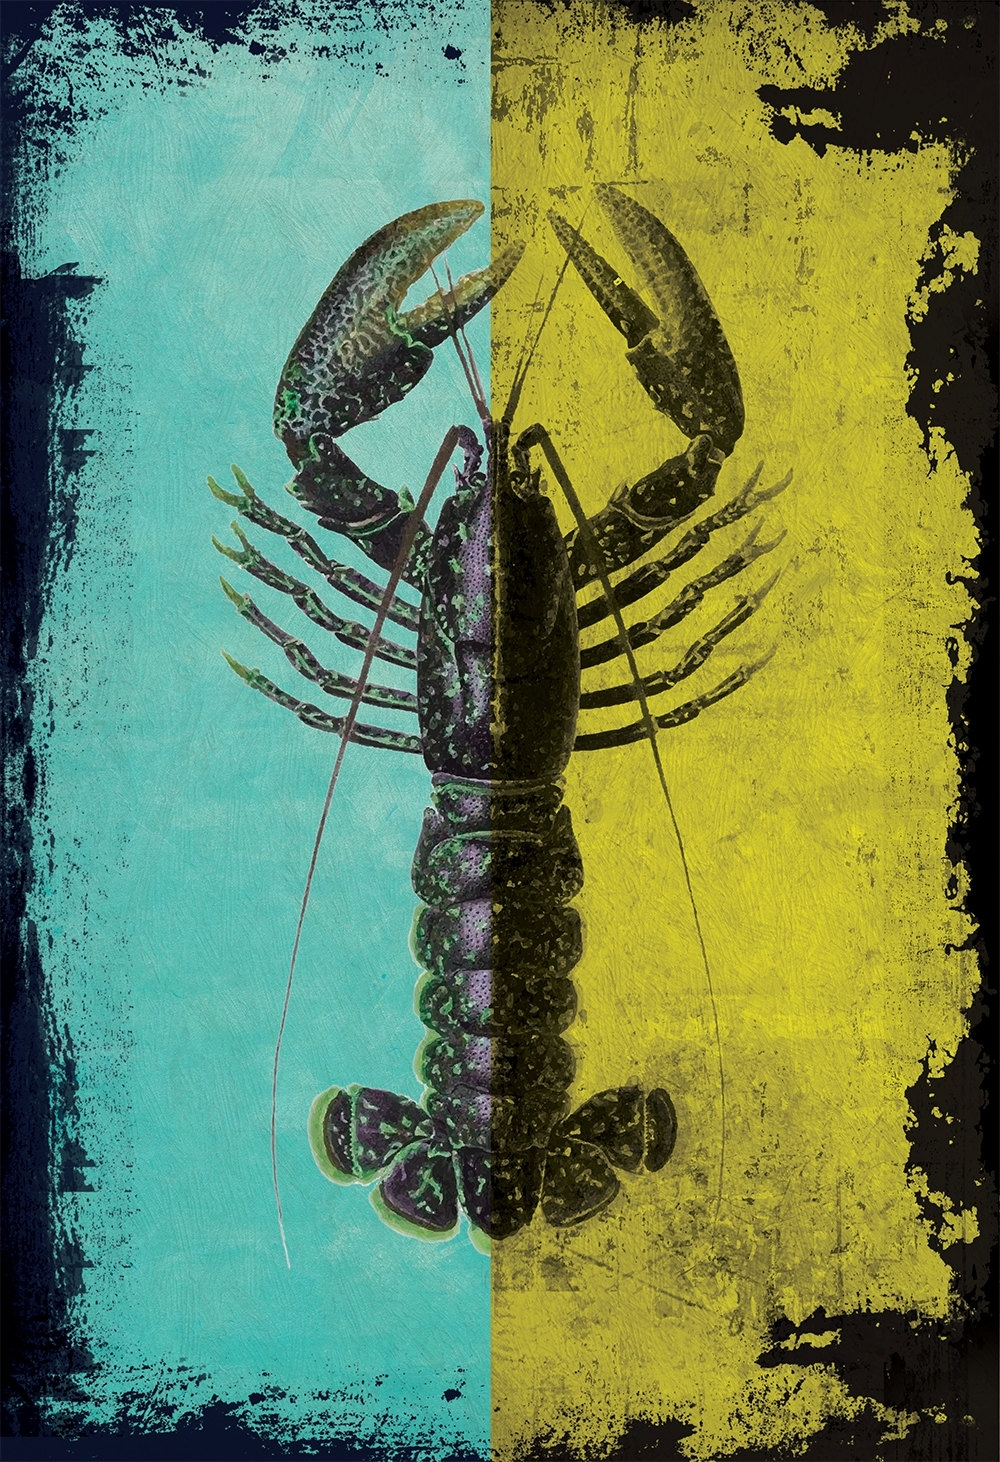 Lobster Print Vintage Nautical Decor Ocean Wall Art – Giclee Print Inside Most Popular Ocean Wall Art (Gallery 12 of 20)